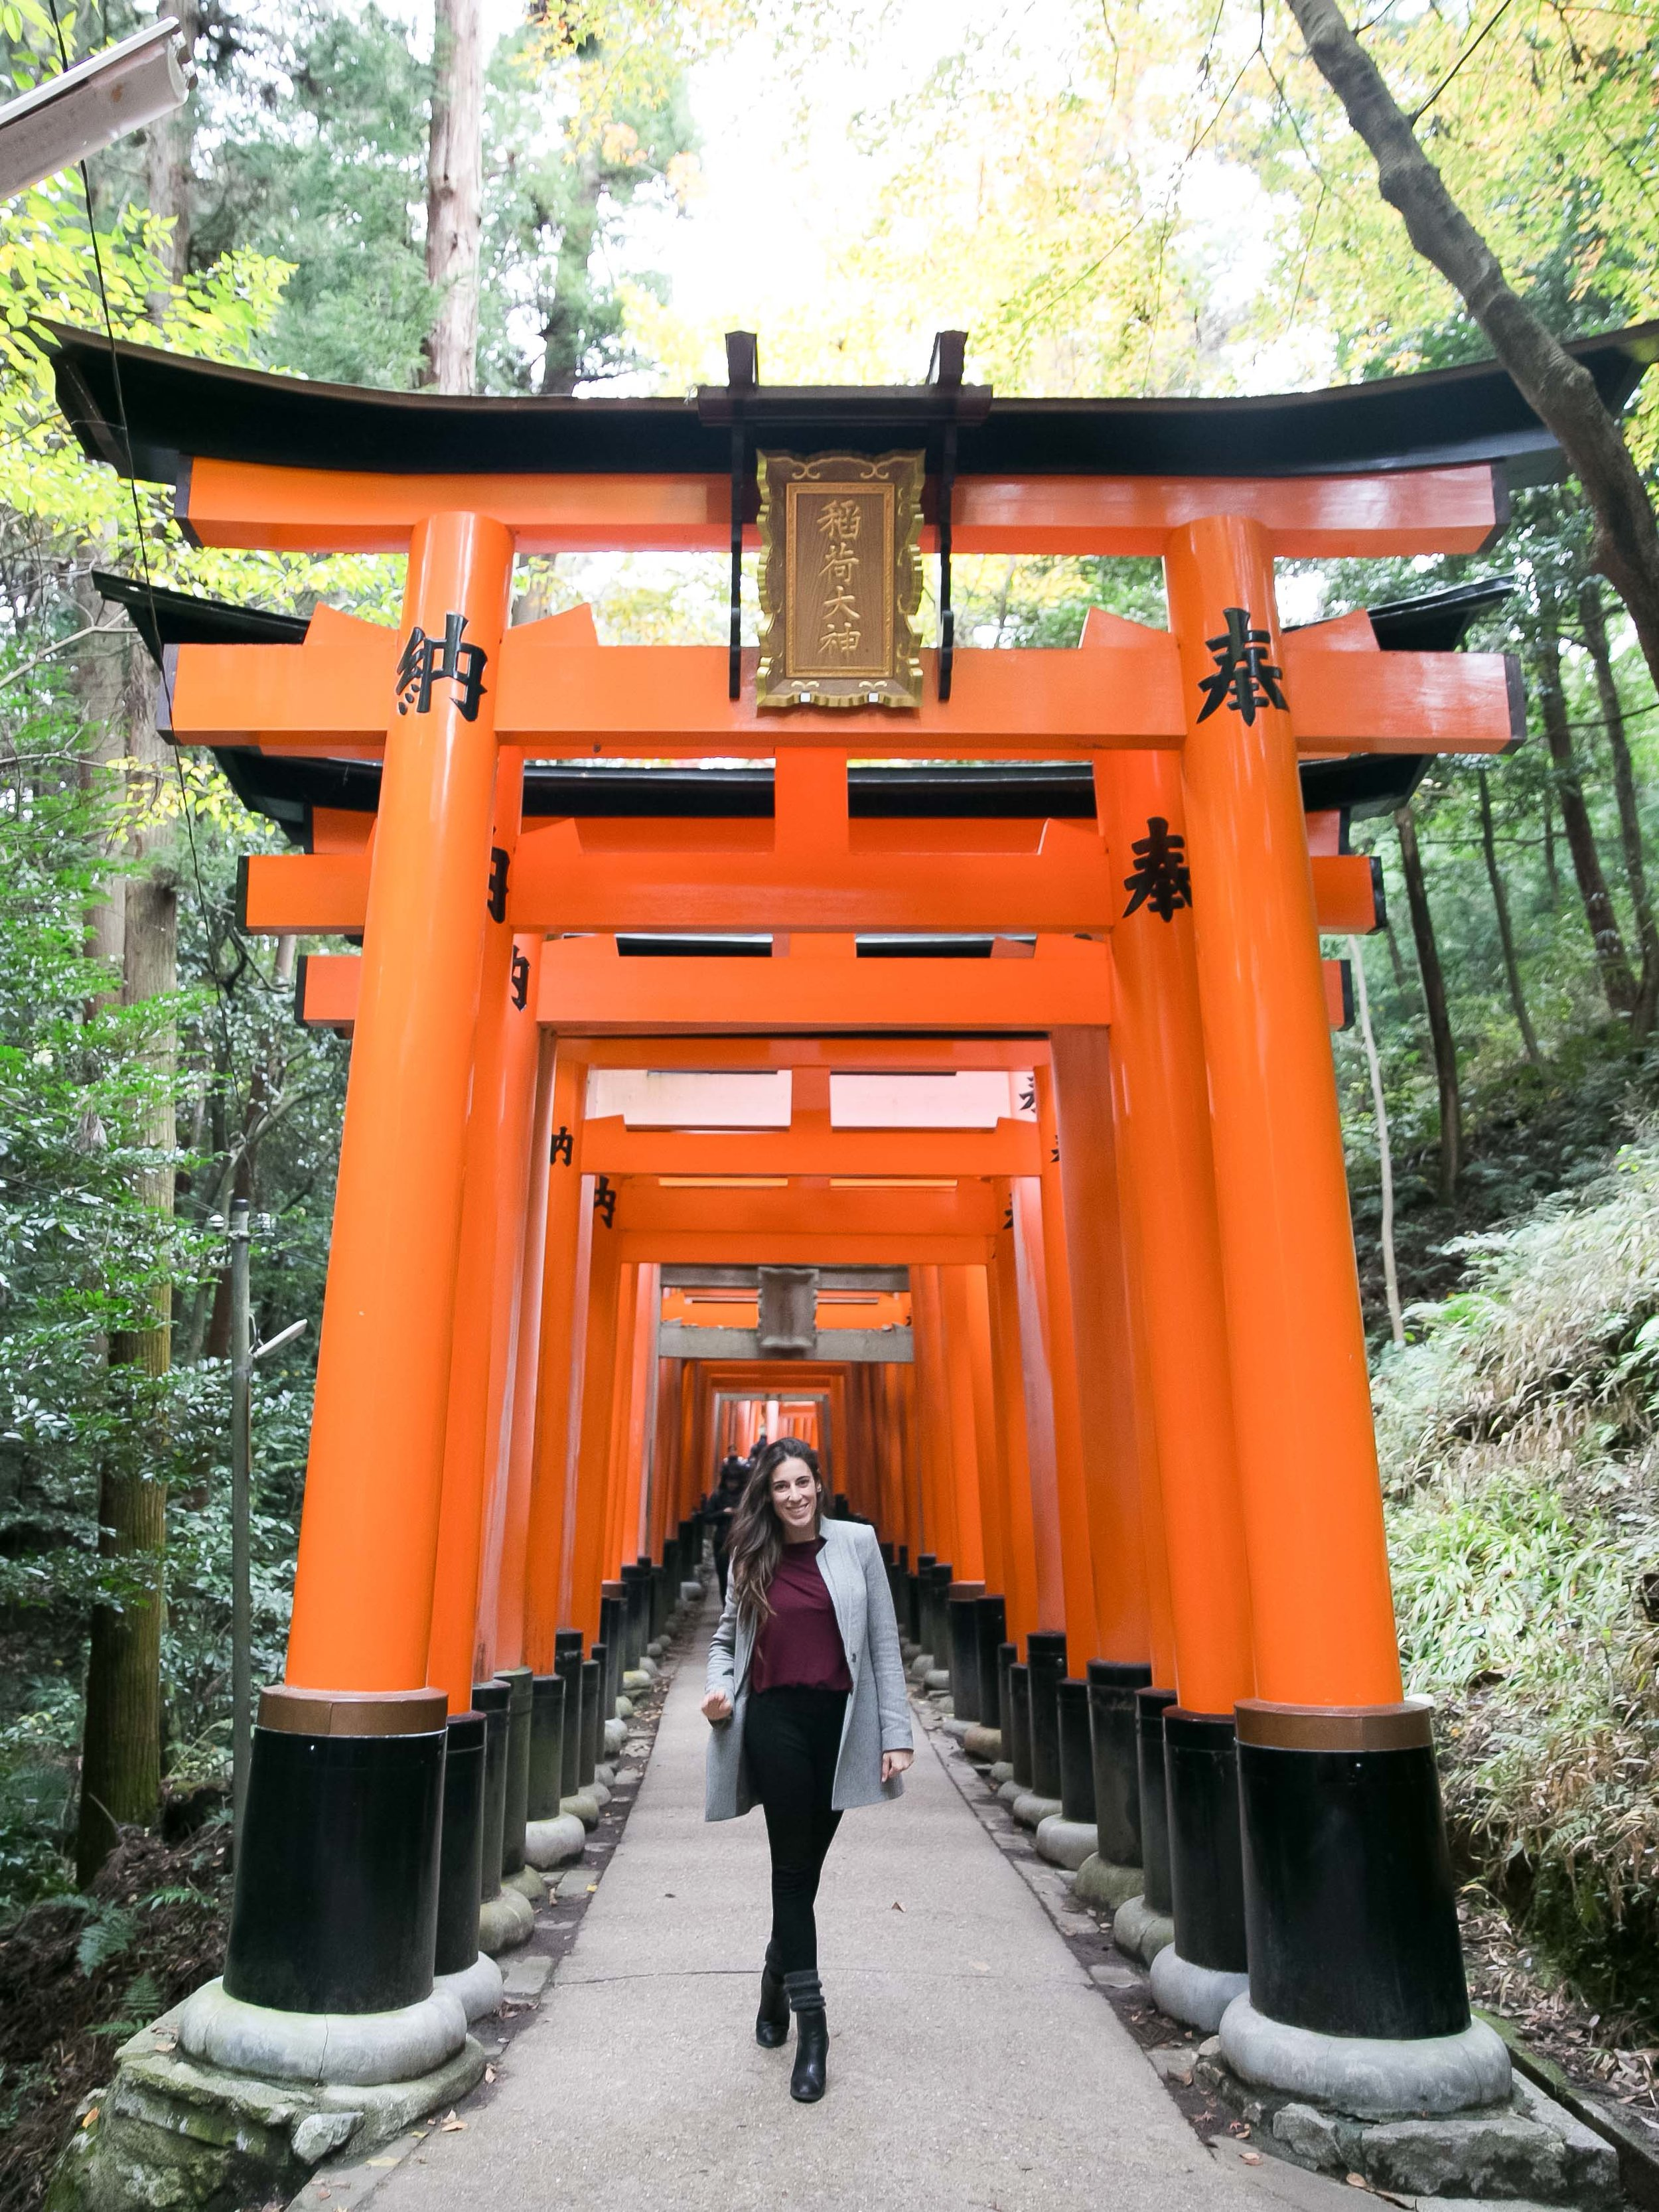 One of the top things you can not miss in Kyoto is Fushimi Inari